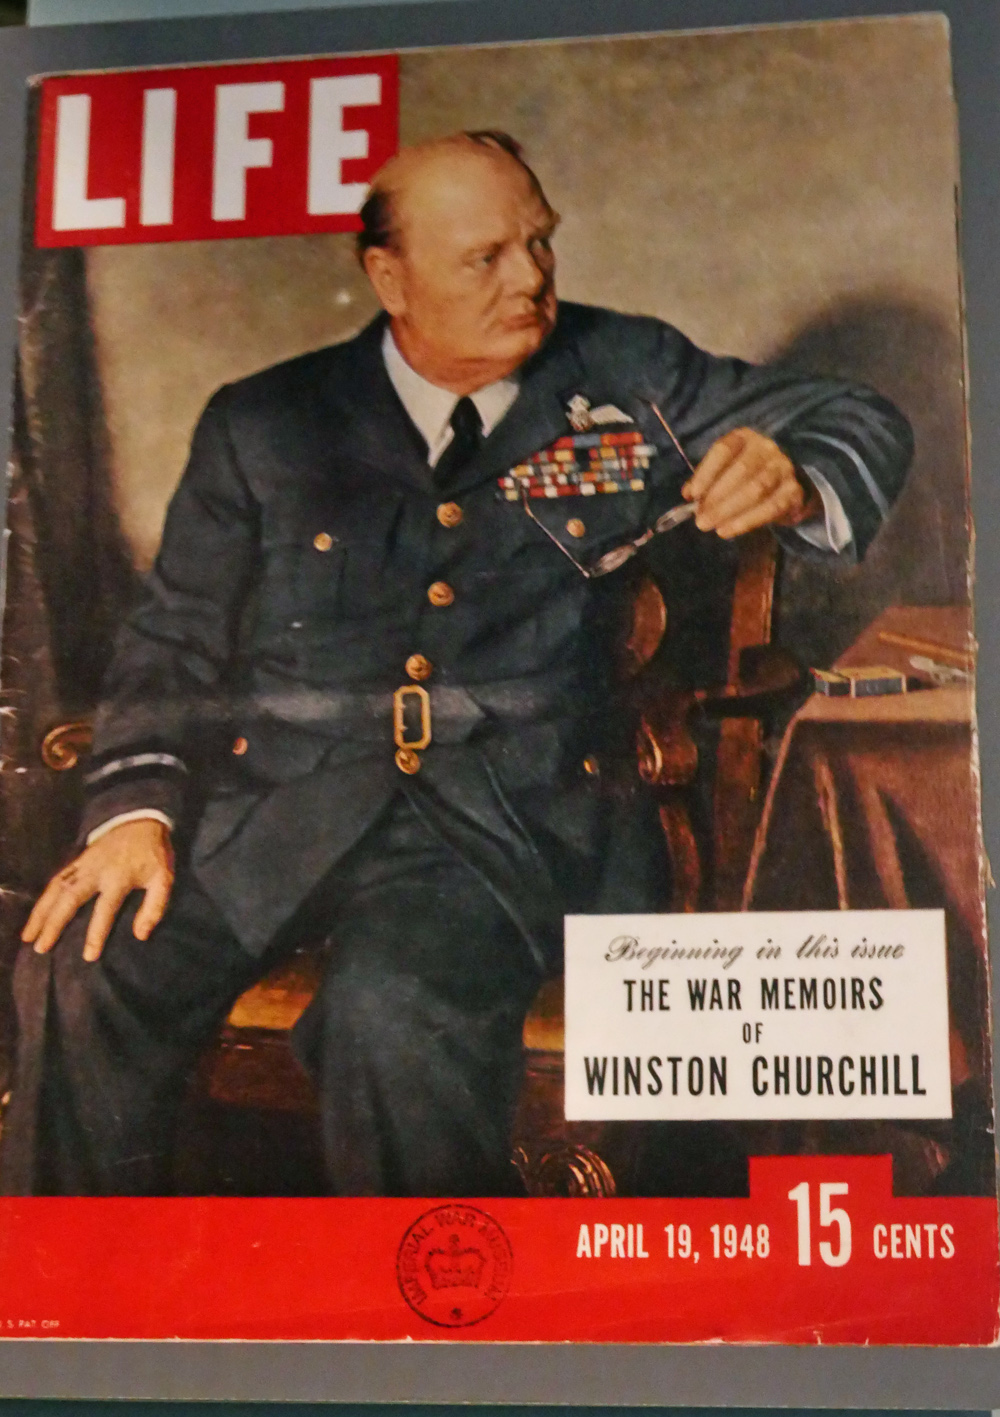 Churchil on the cover of life magazine